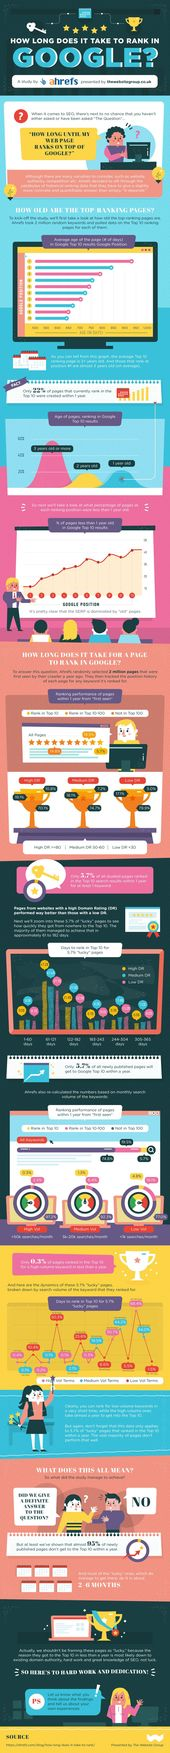 How long does it take for my site to rank on Google? Nice infographic from ahrefs.com. #SEO